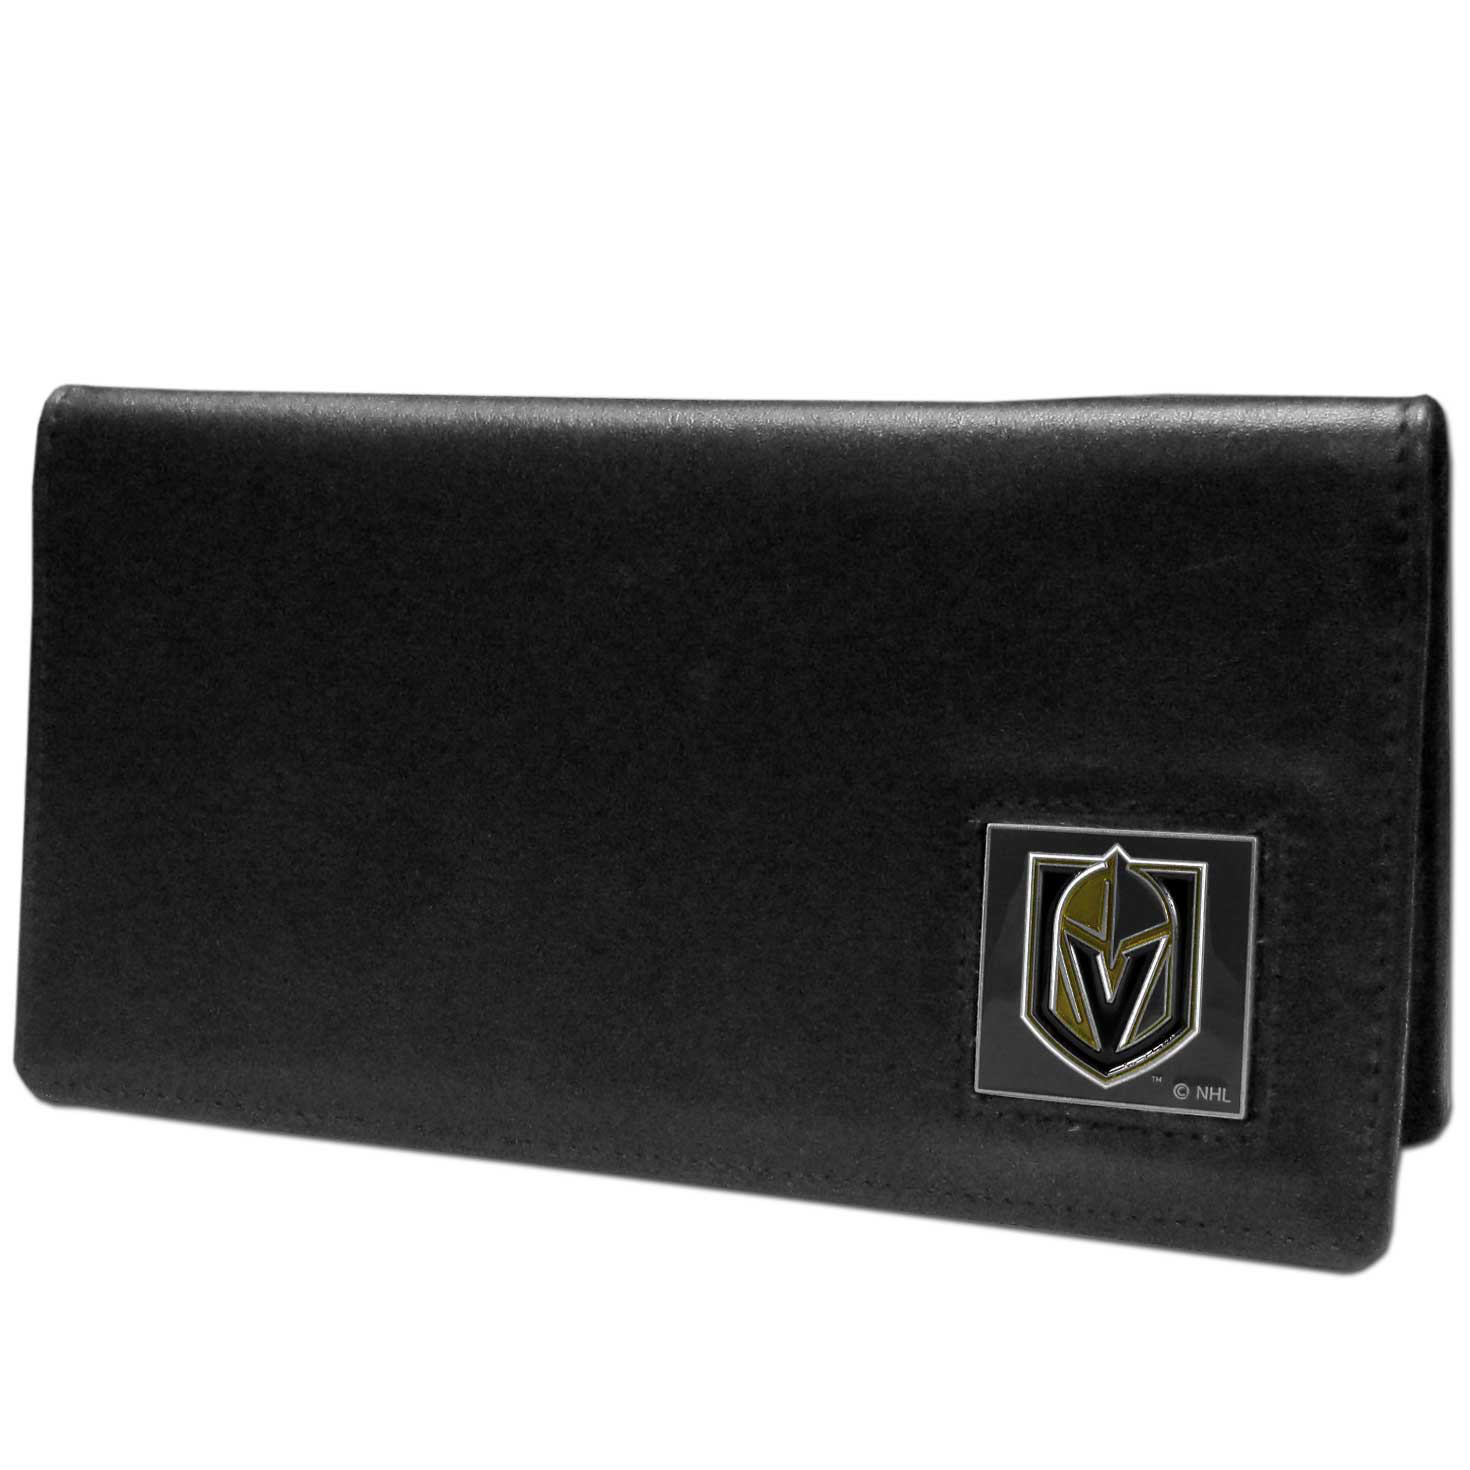 Las Vegas Golden Knights® Leather Checkbook Cover - Our officially licensed checkbook covers is made of fine grain leather and features a fully cast and enameled Las Vegas Golden Knights® emblem. The cover works for both top and side loaded checks and has a plastic sleeve for duplicate check writing.